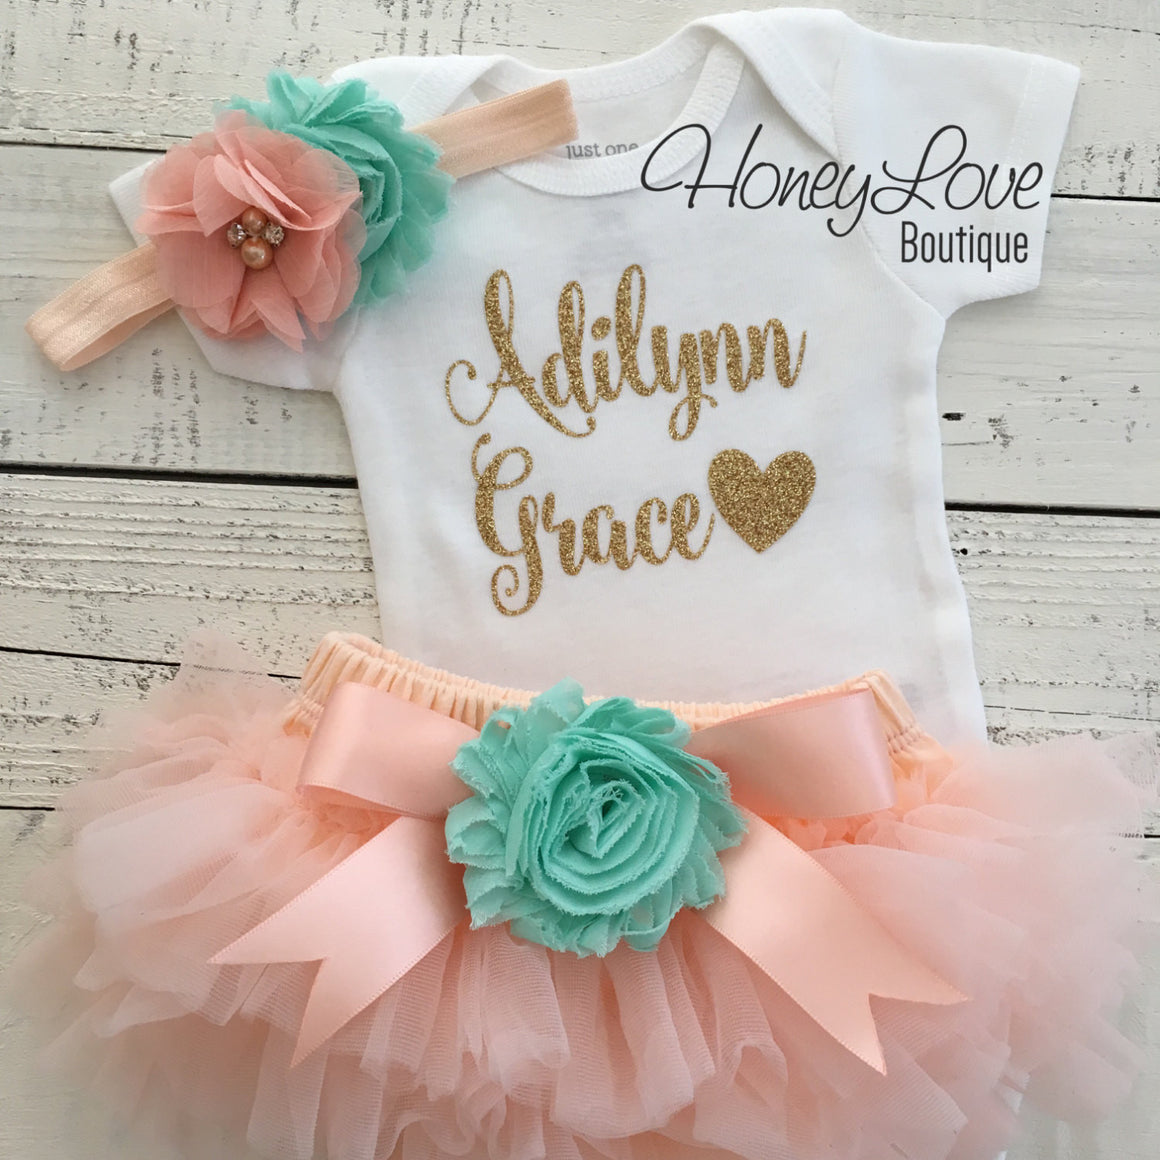 PERSONALIZED Name Outfit - Gold glitter and Peach/Mint/Aqua - embellished tutu skirt bloomers - HoneyLoveBoutique